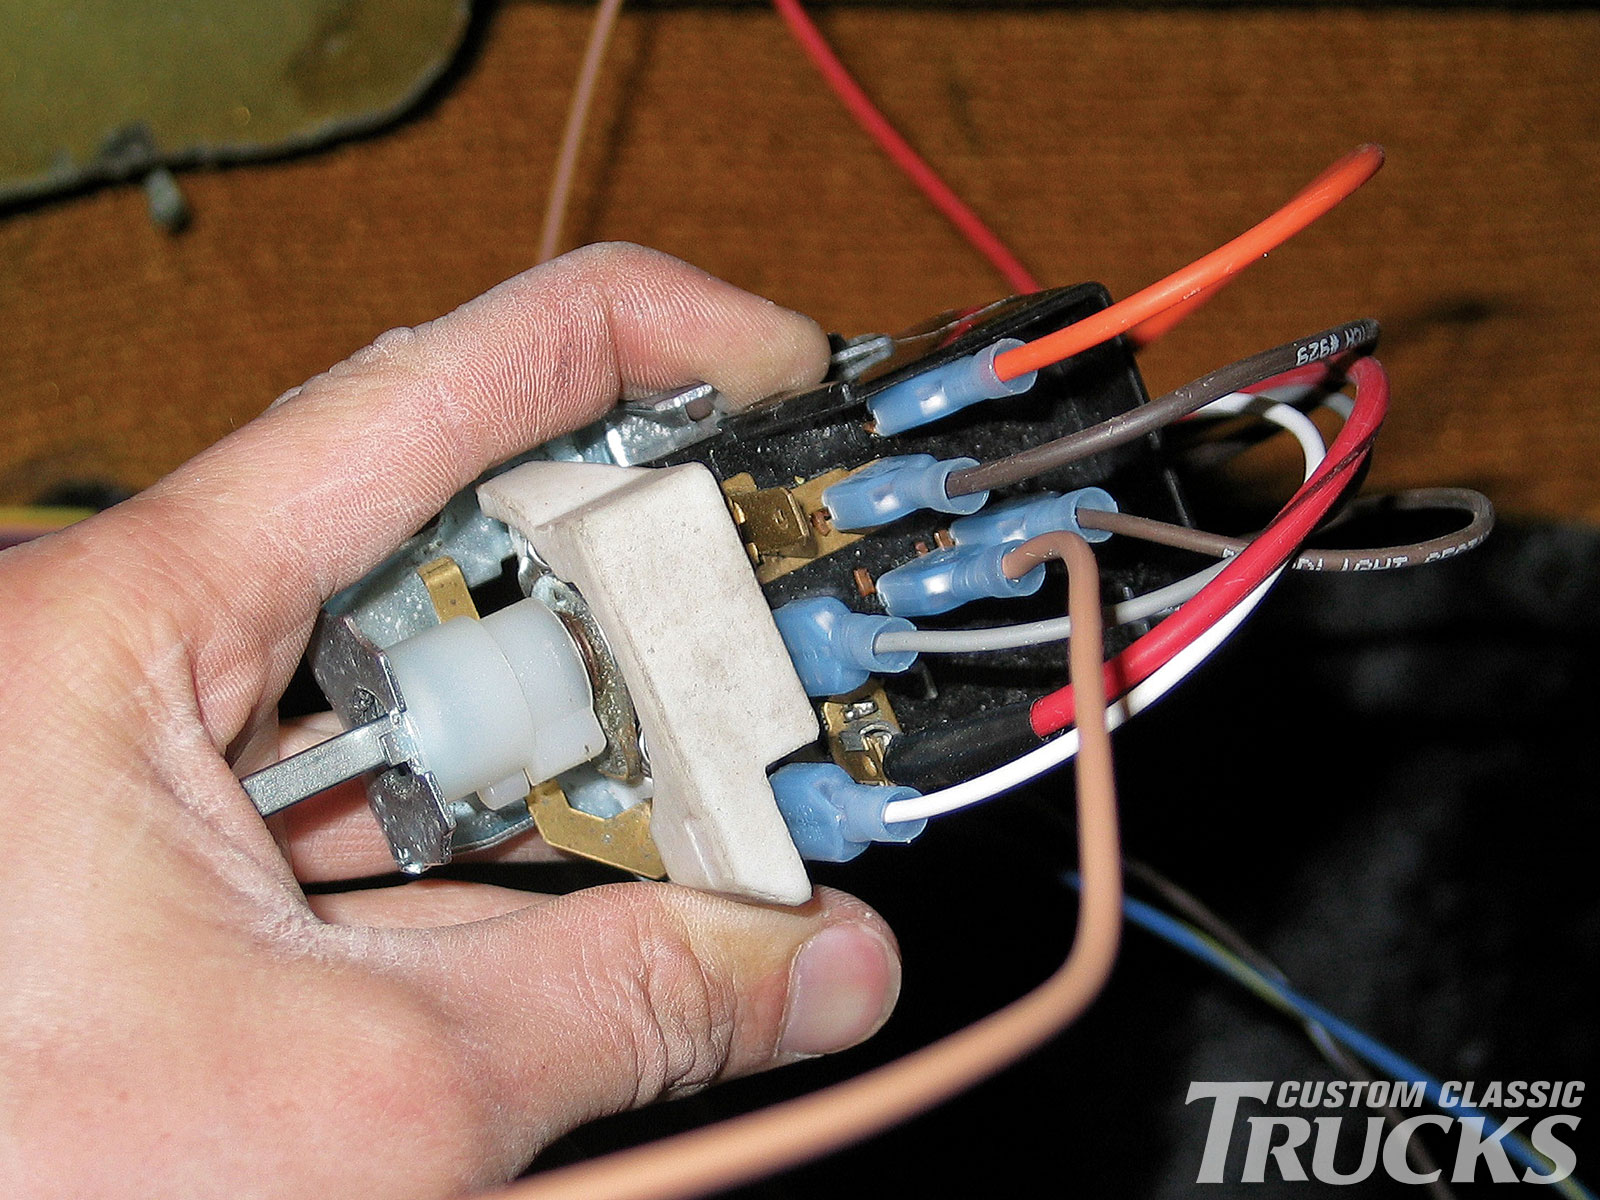 jeep painless fuse box wiring diagram centrejeep painless fuse box wiring diagrampainless wiring harness diagram 73 [ 1600 x 1200 Pixel ]